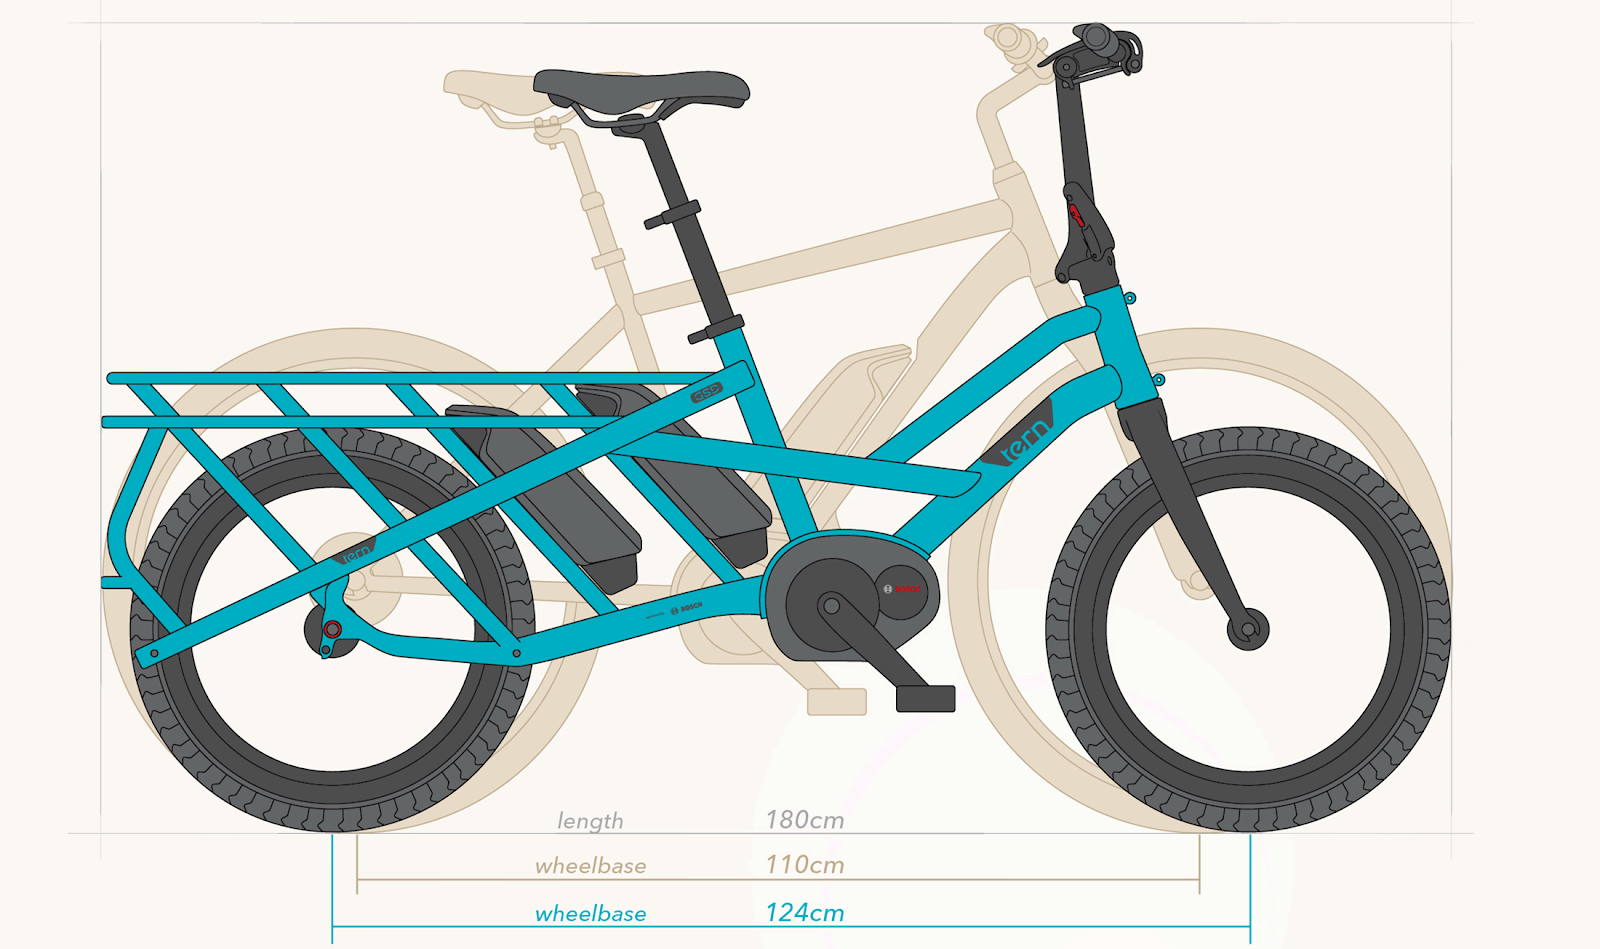 image comparing the size of the Tern GSD to a normal bicycle